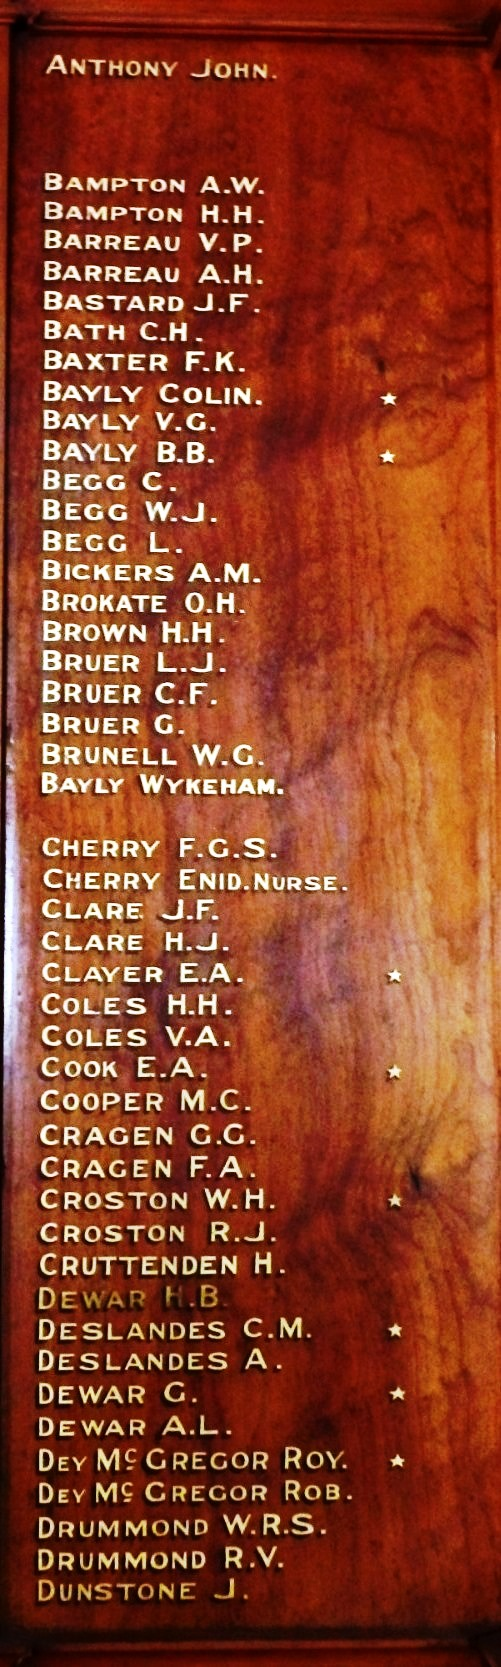 The Bayly brothers (Colin and B.B [Brian])  are listed on this Semaphore Church memorial:  both fell in France serving with British units. (Image by courtesy AMOSA)